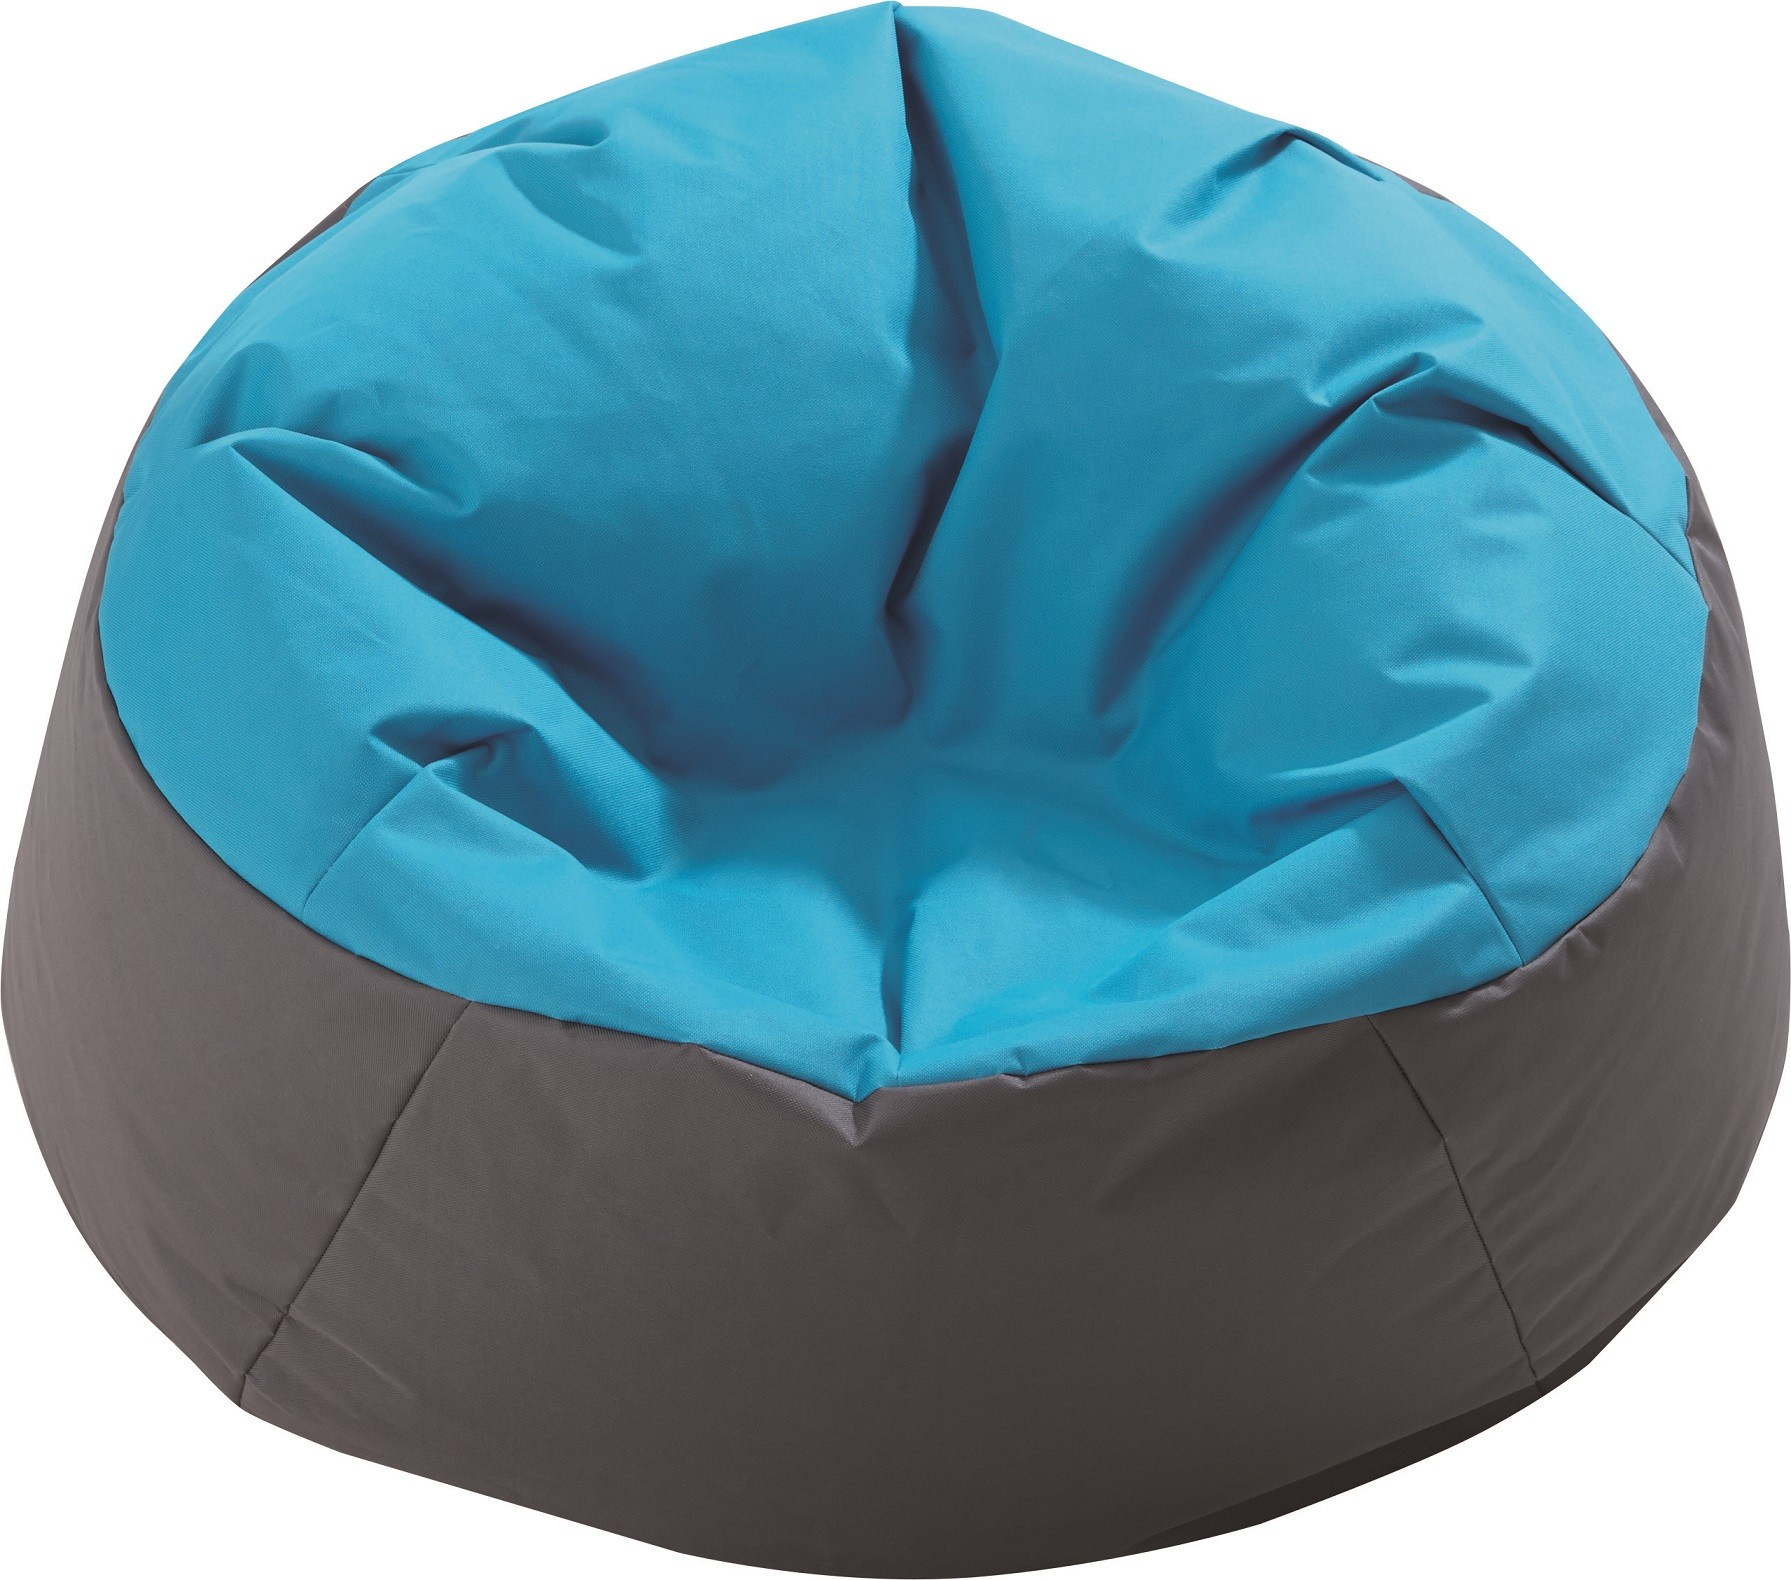 Ball Bean Bag  Teal  Anthracite  by HABA 022927